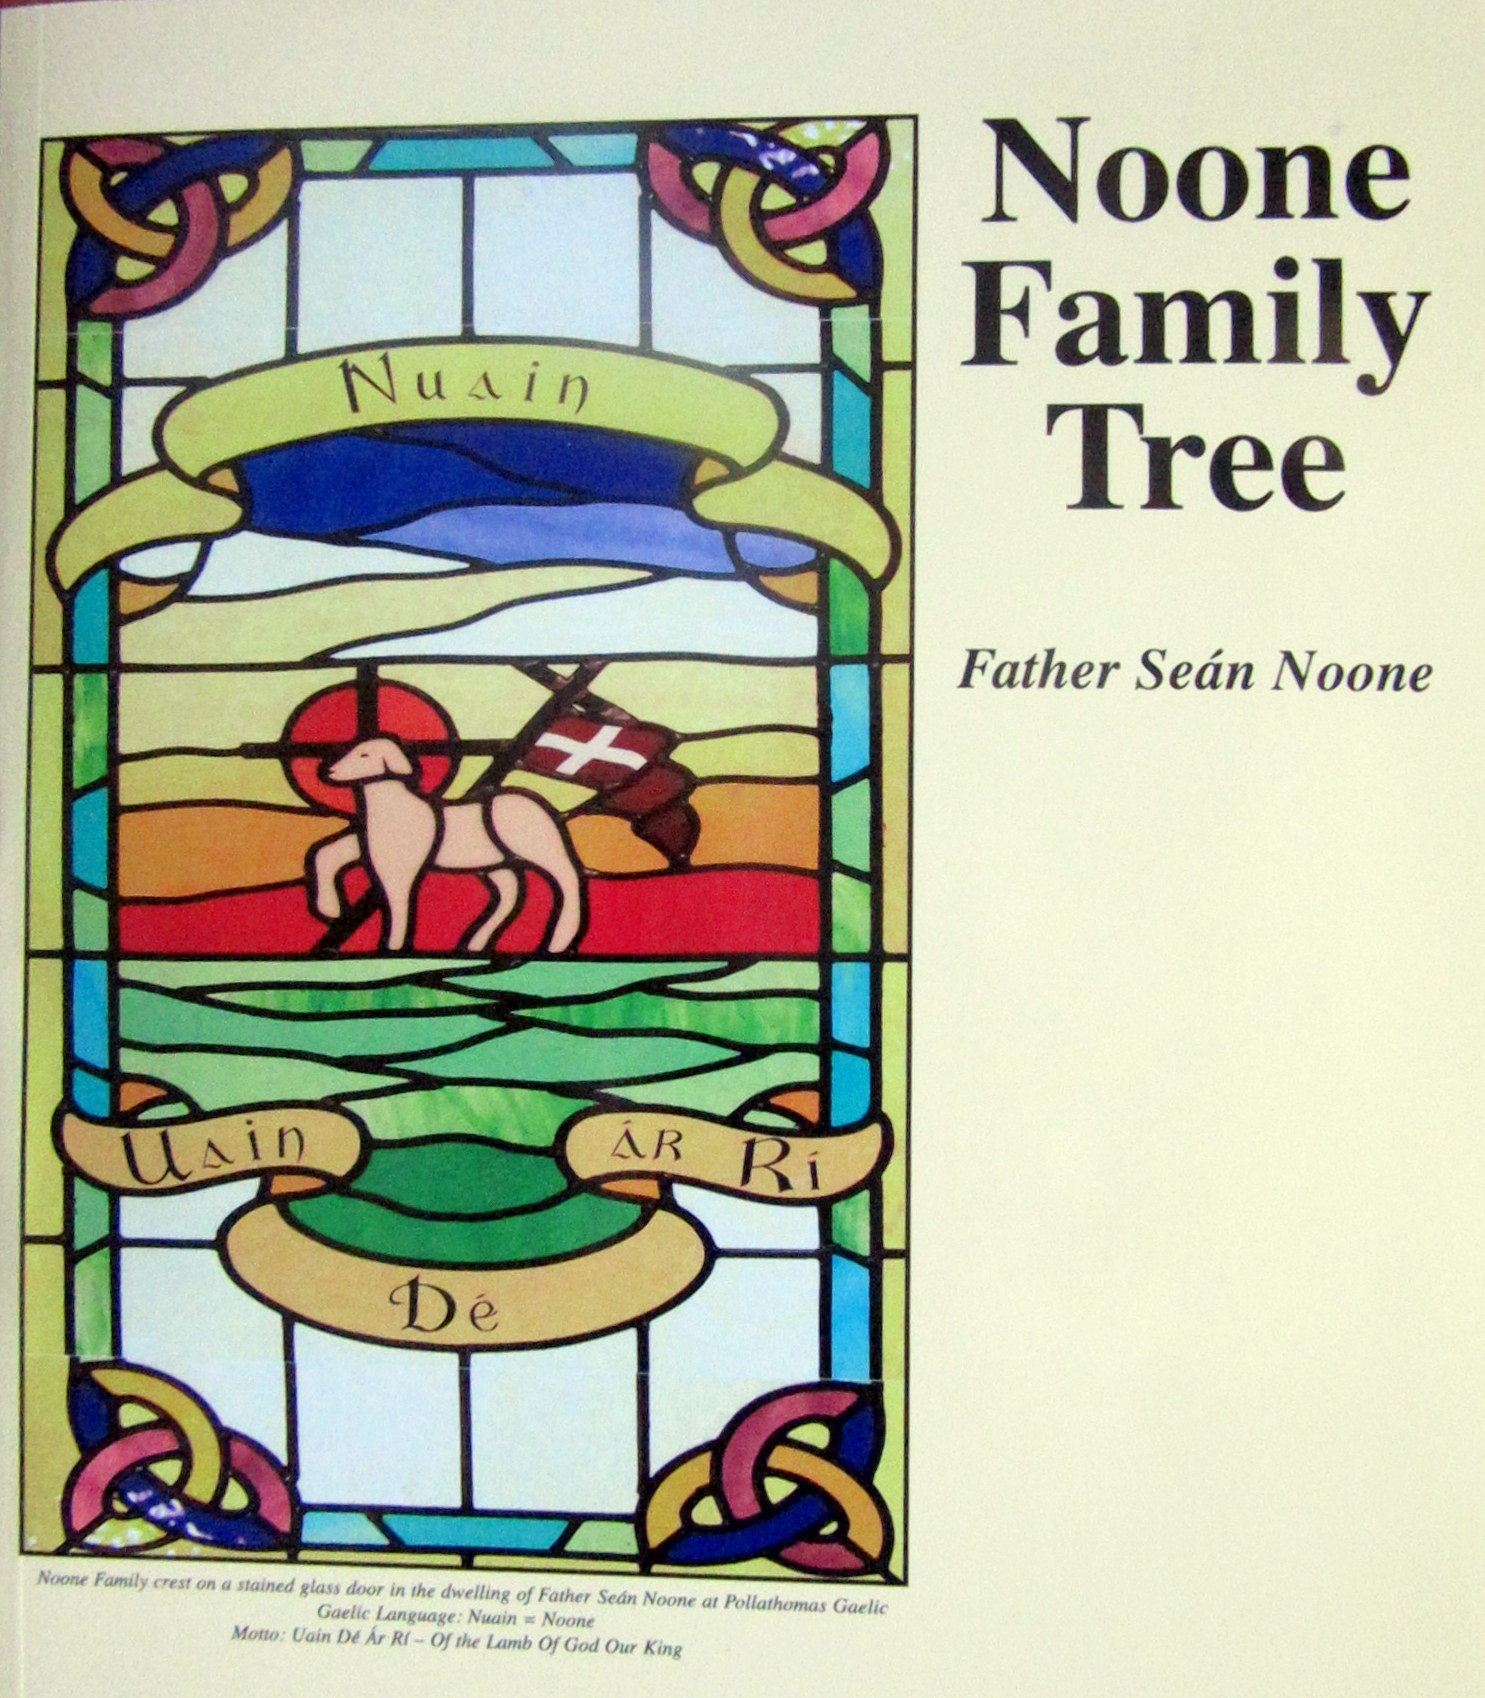 Noone Family Tree